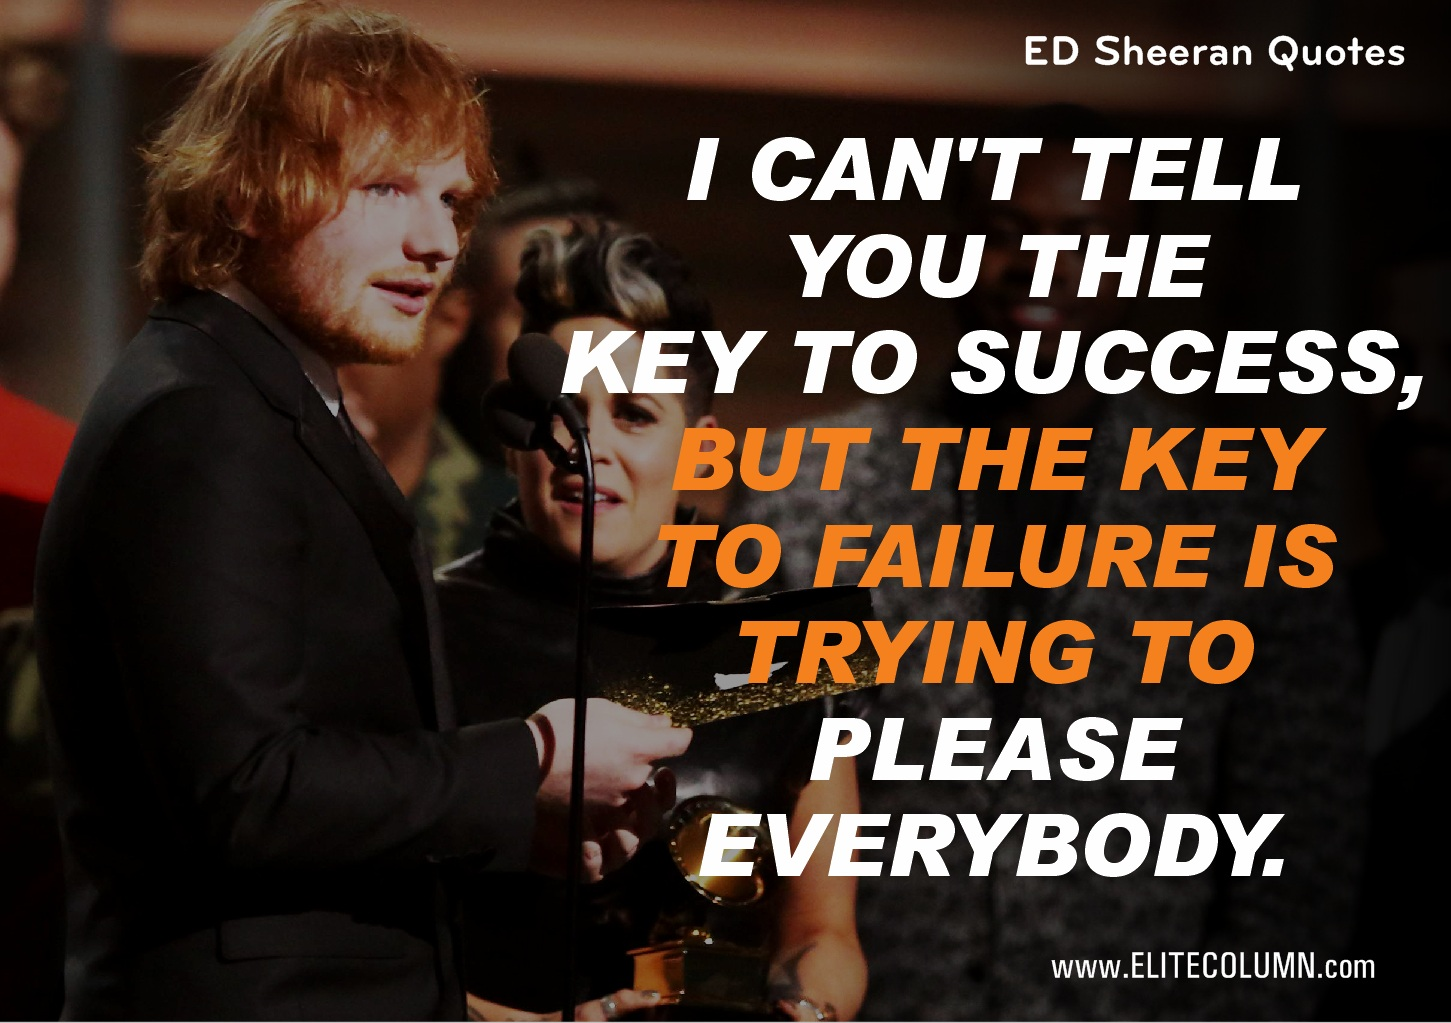 Ed Sheeran Quotes (5)